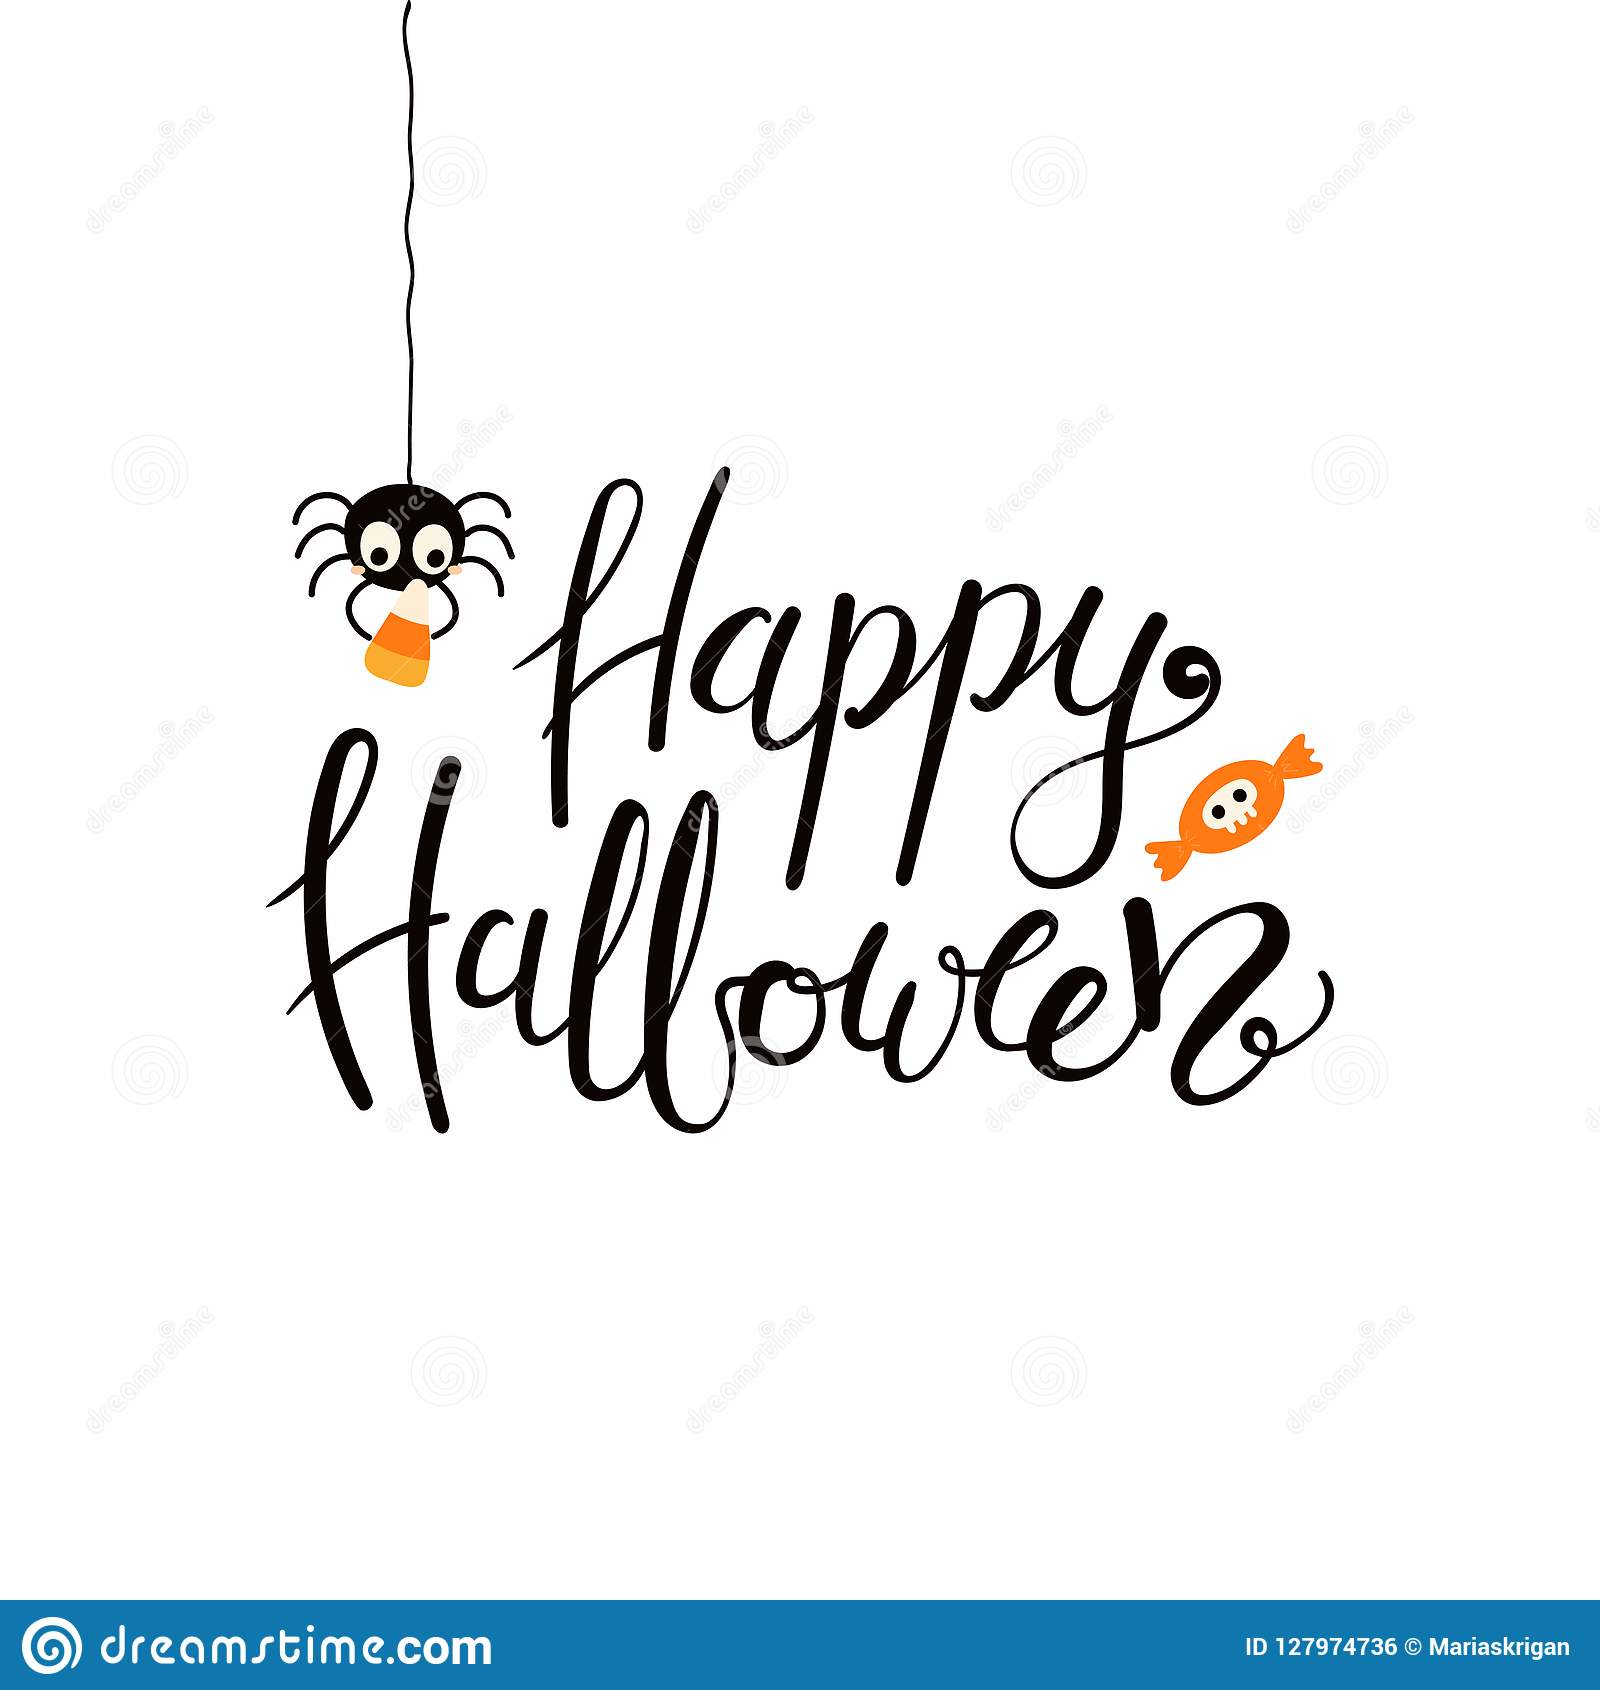 Happy Halloween Lettering Quote Stock Vector Illustration Of Costume Event 127974736